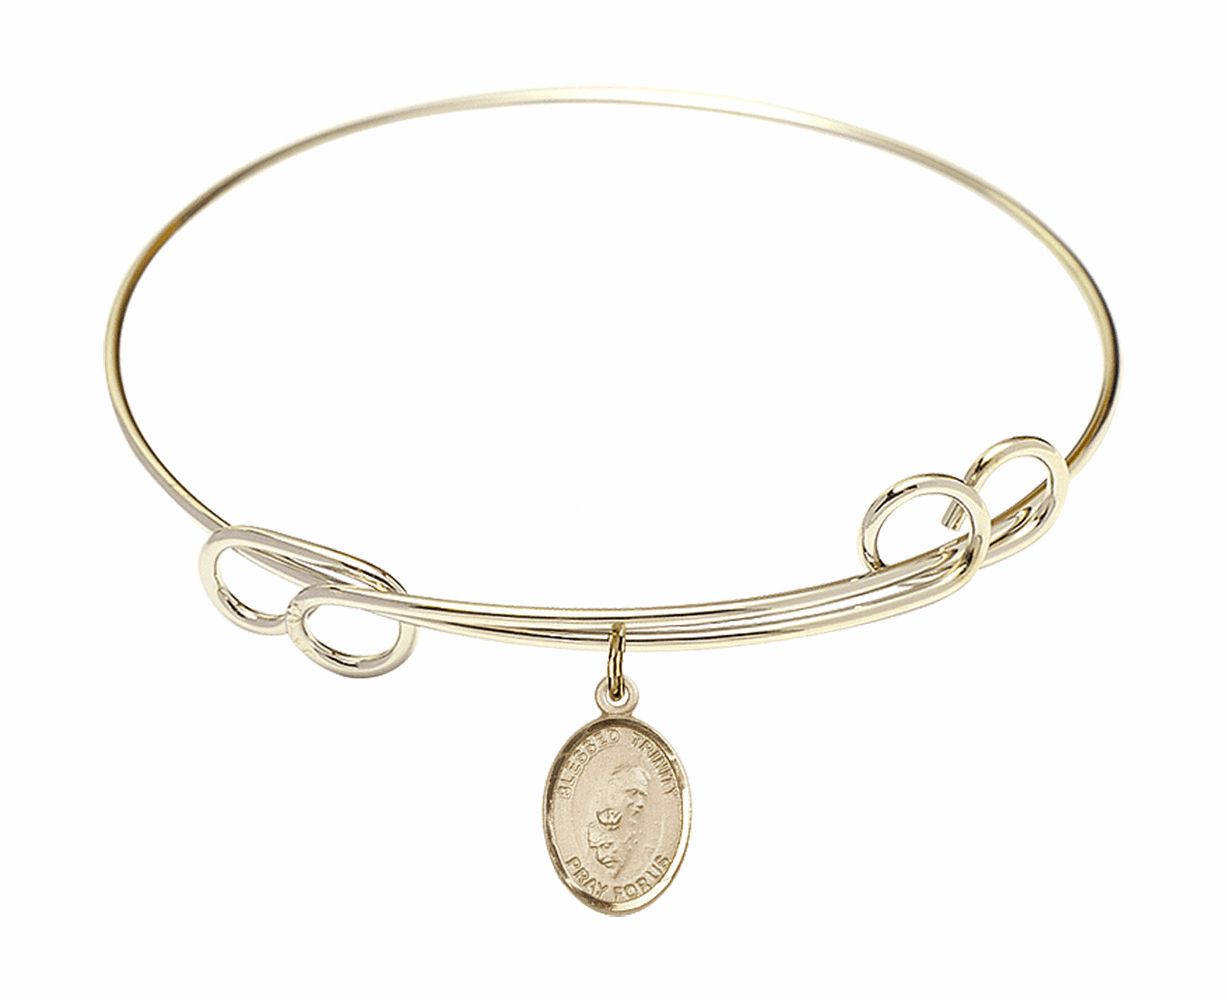 Loop Holy Trinity Bangle 14kt Gold-filled Charm Bracelet by Bliss